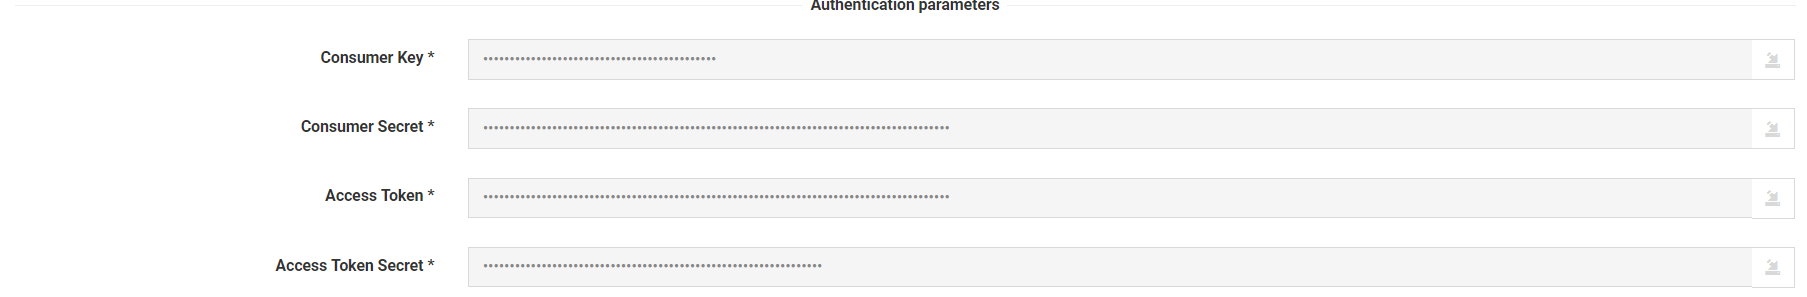 twitter-authentication-parameters.png